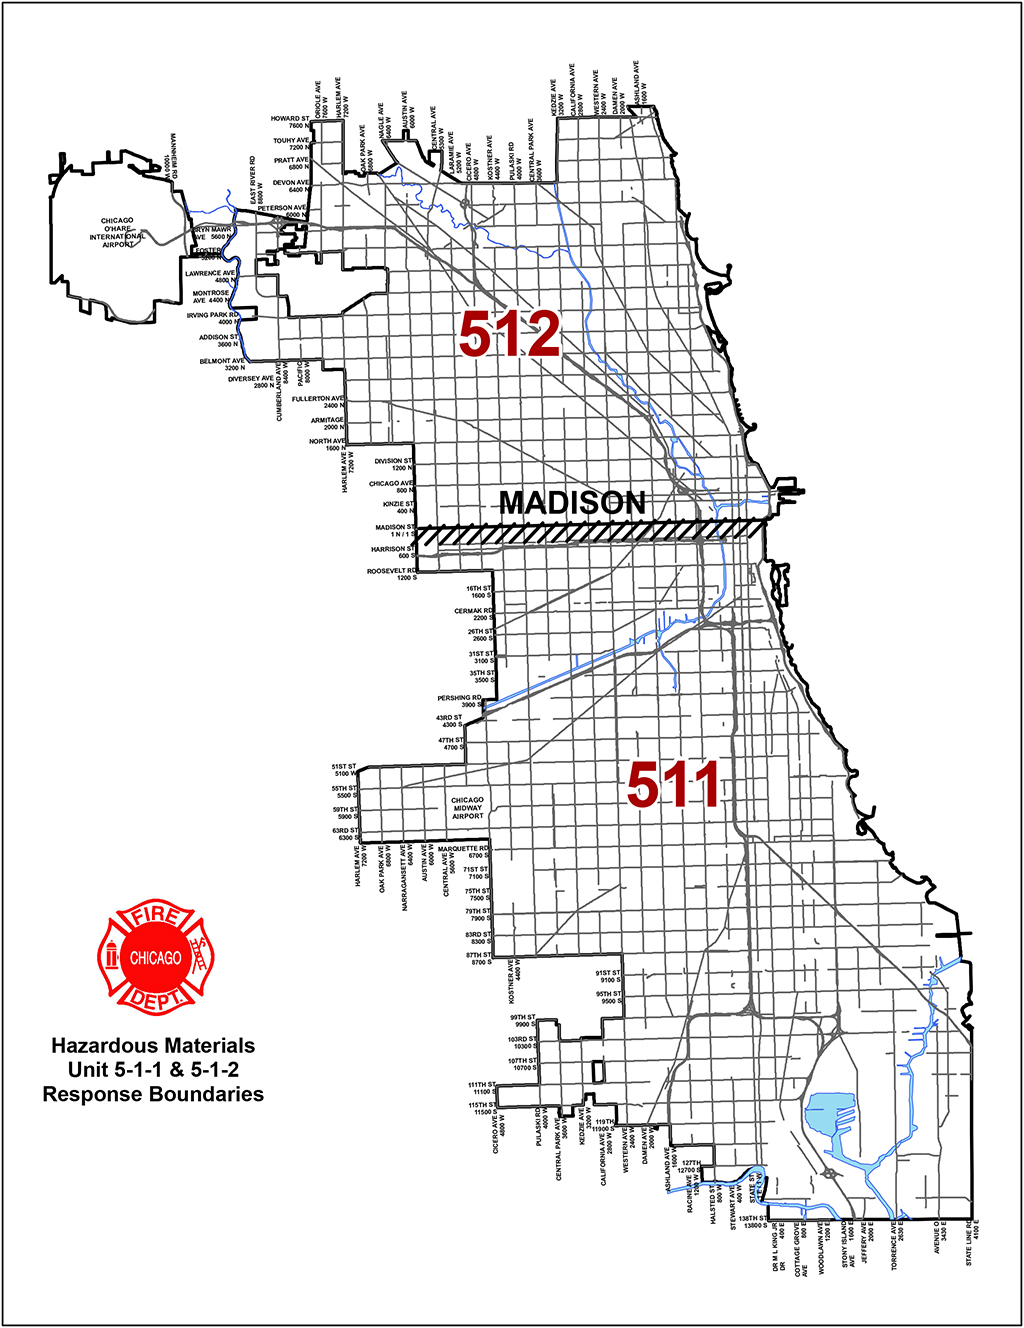 Chicago Fire Department Haz Mat Unit District Boundaries